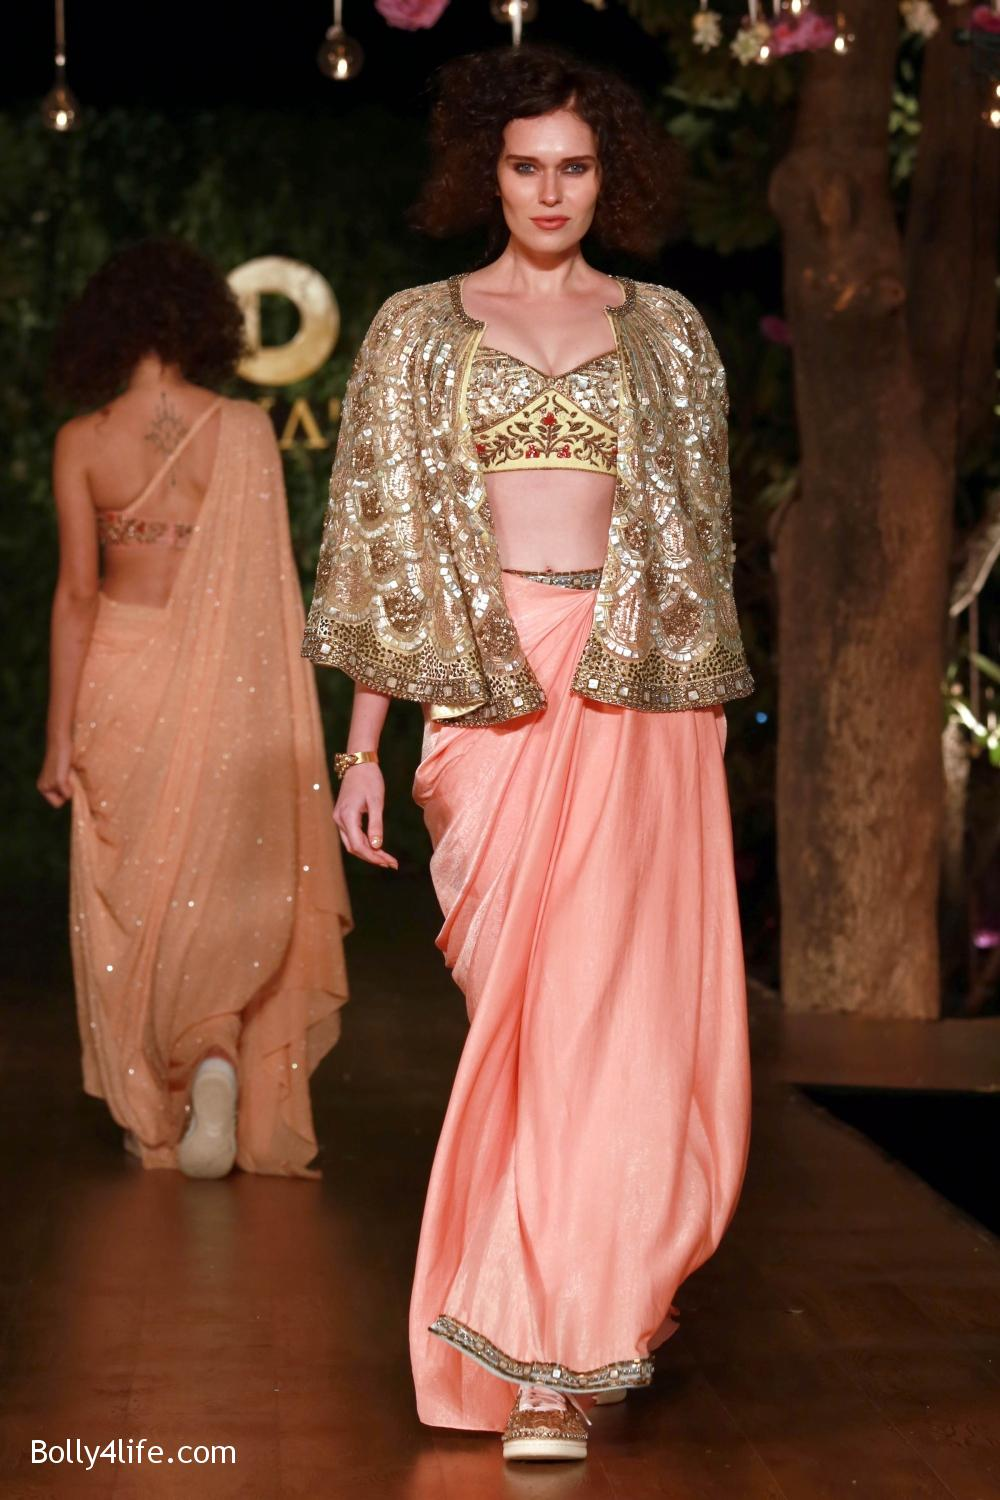 Divani-Fashion-Show-Ranveer-Singh-and-Vaani-Kapoor-12.jpg